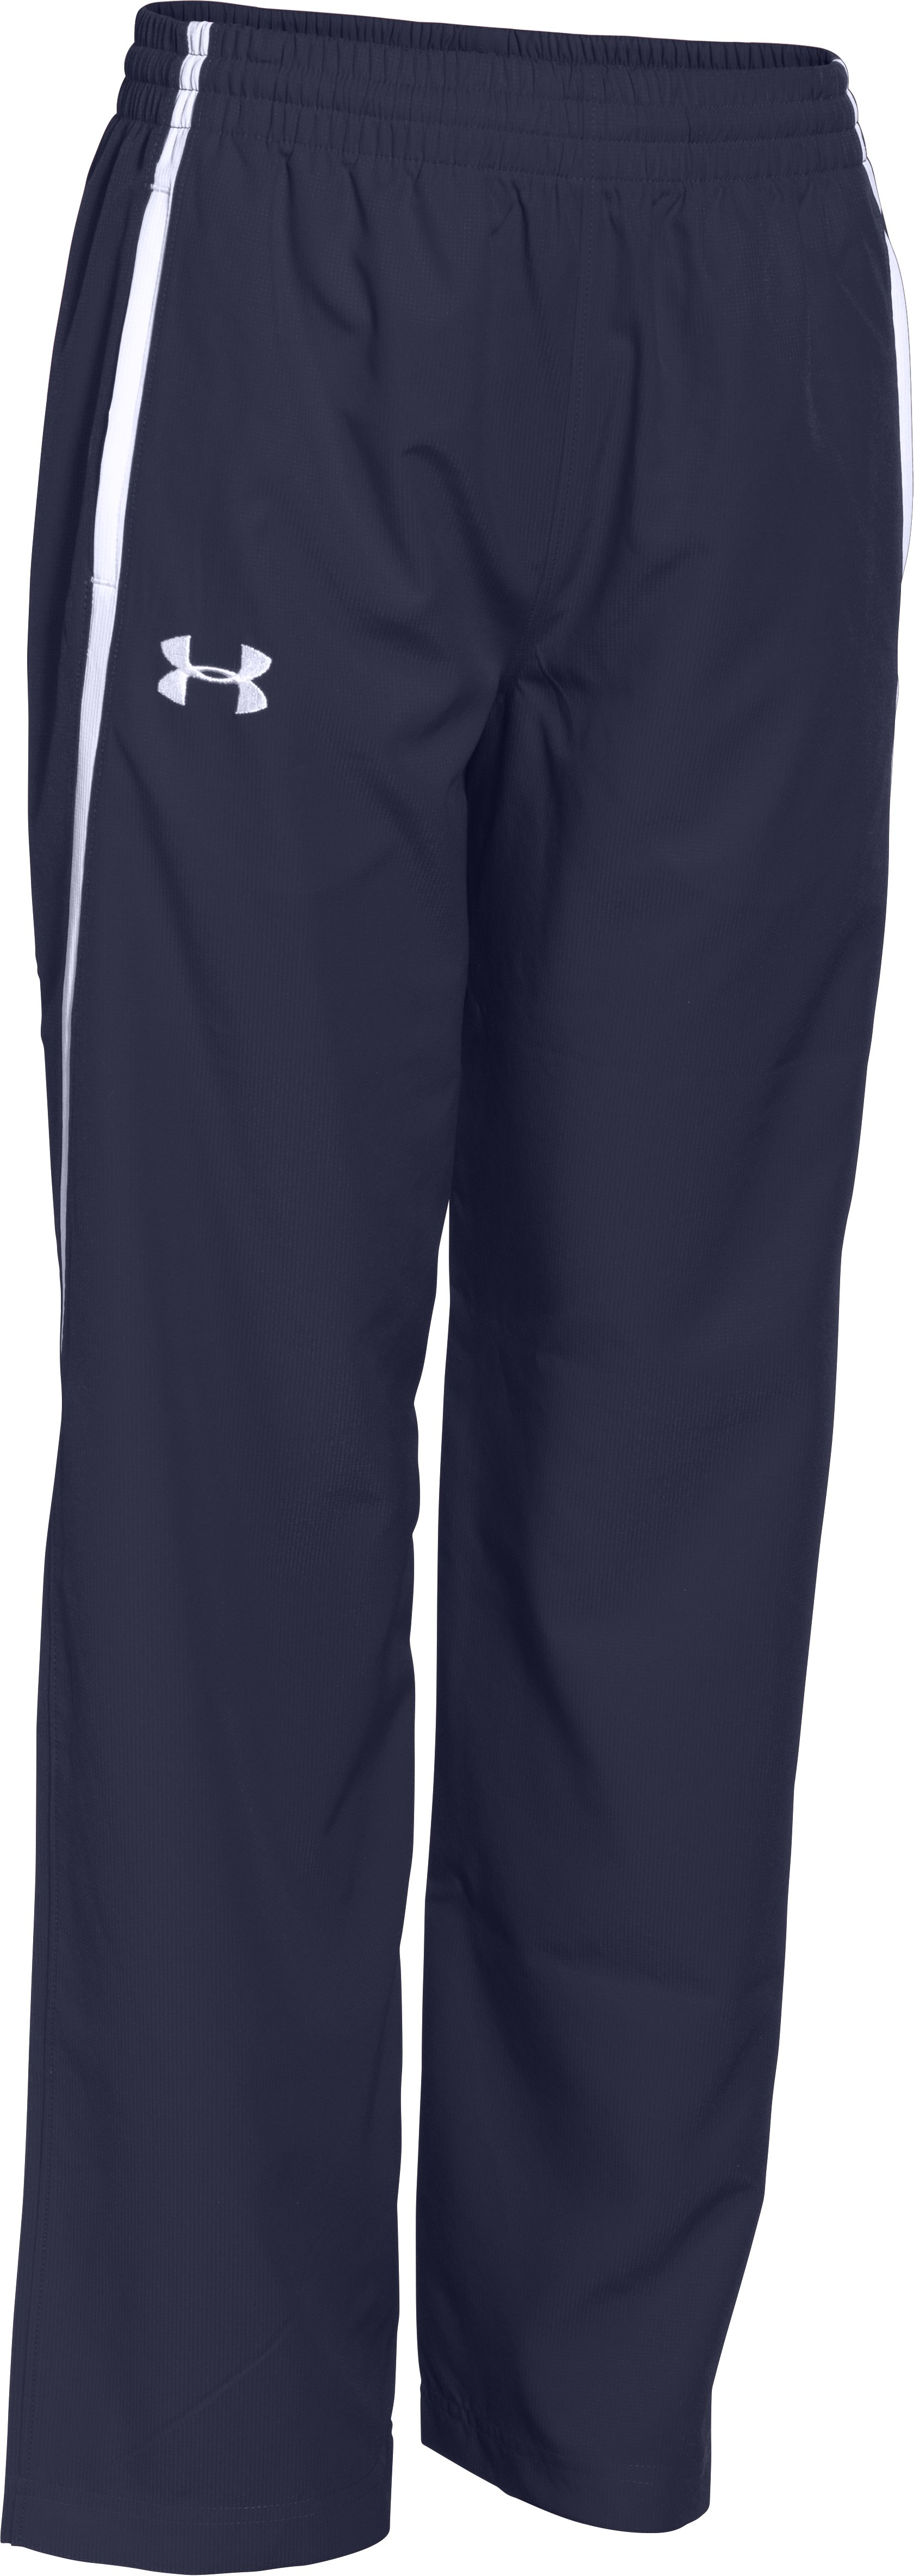 Boys' UA Essential Warm-Up Pants, Midnight Navy,